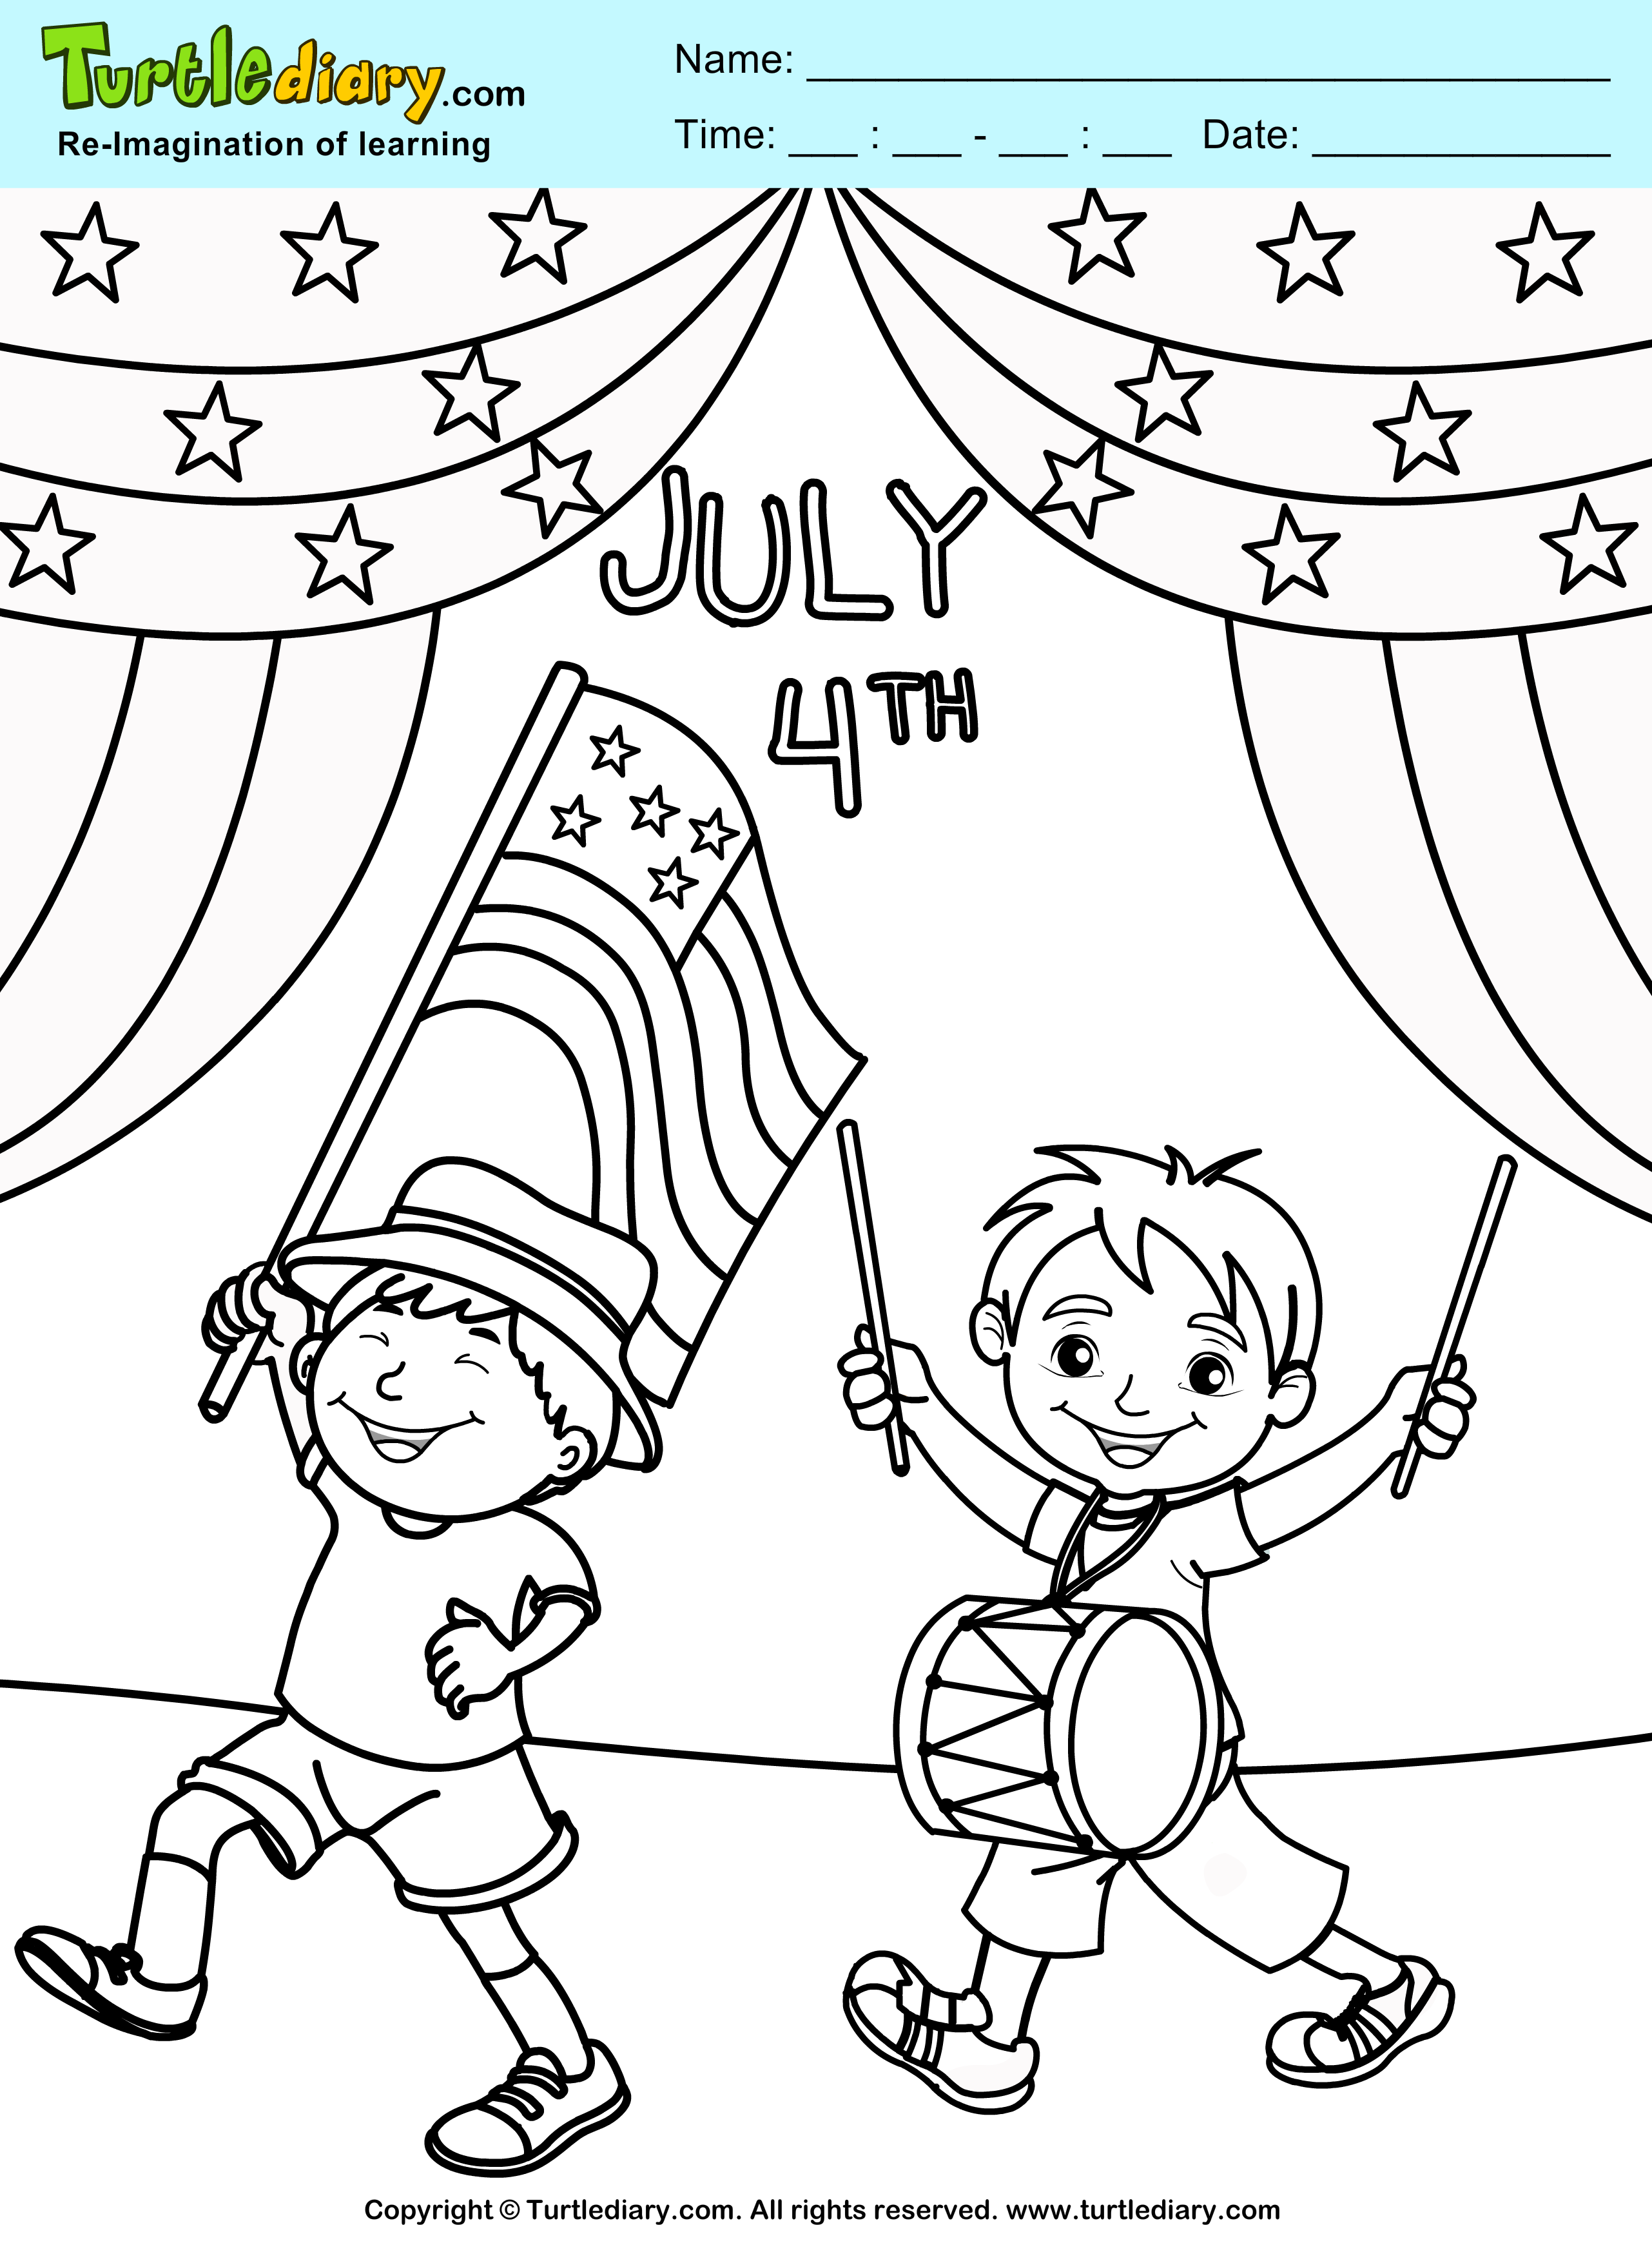 4th of July Parade Coloring Page